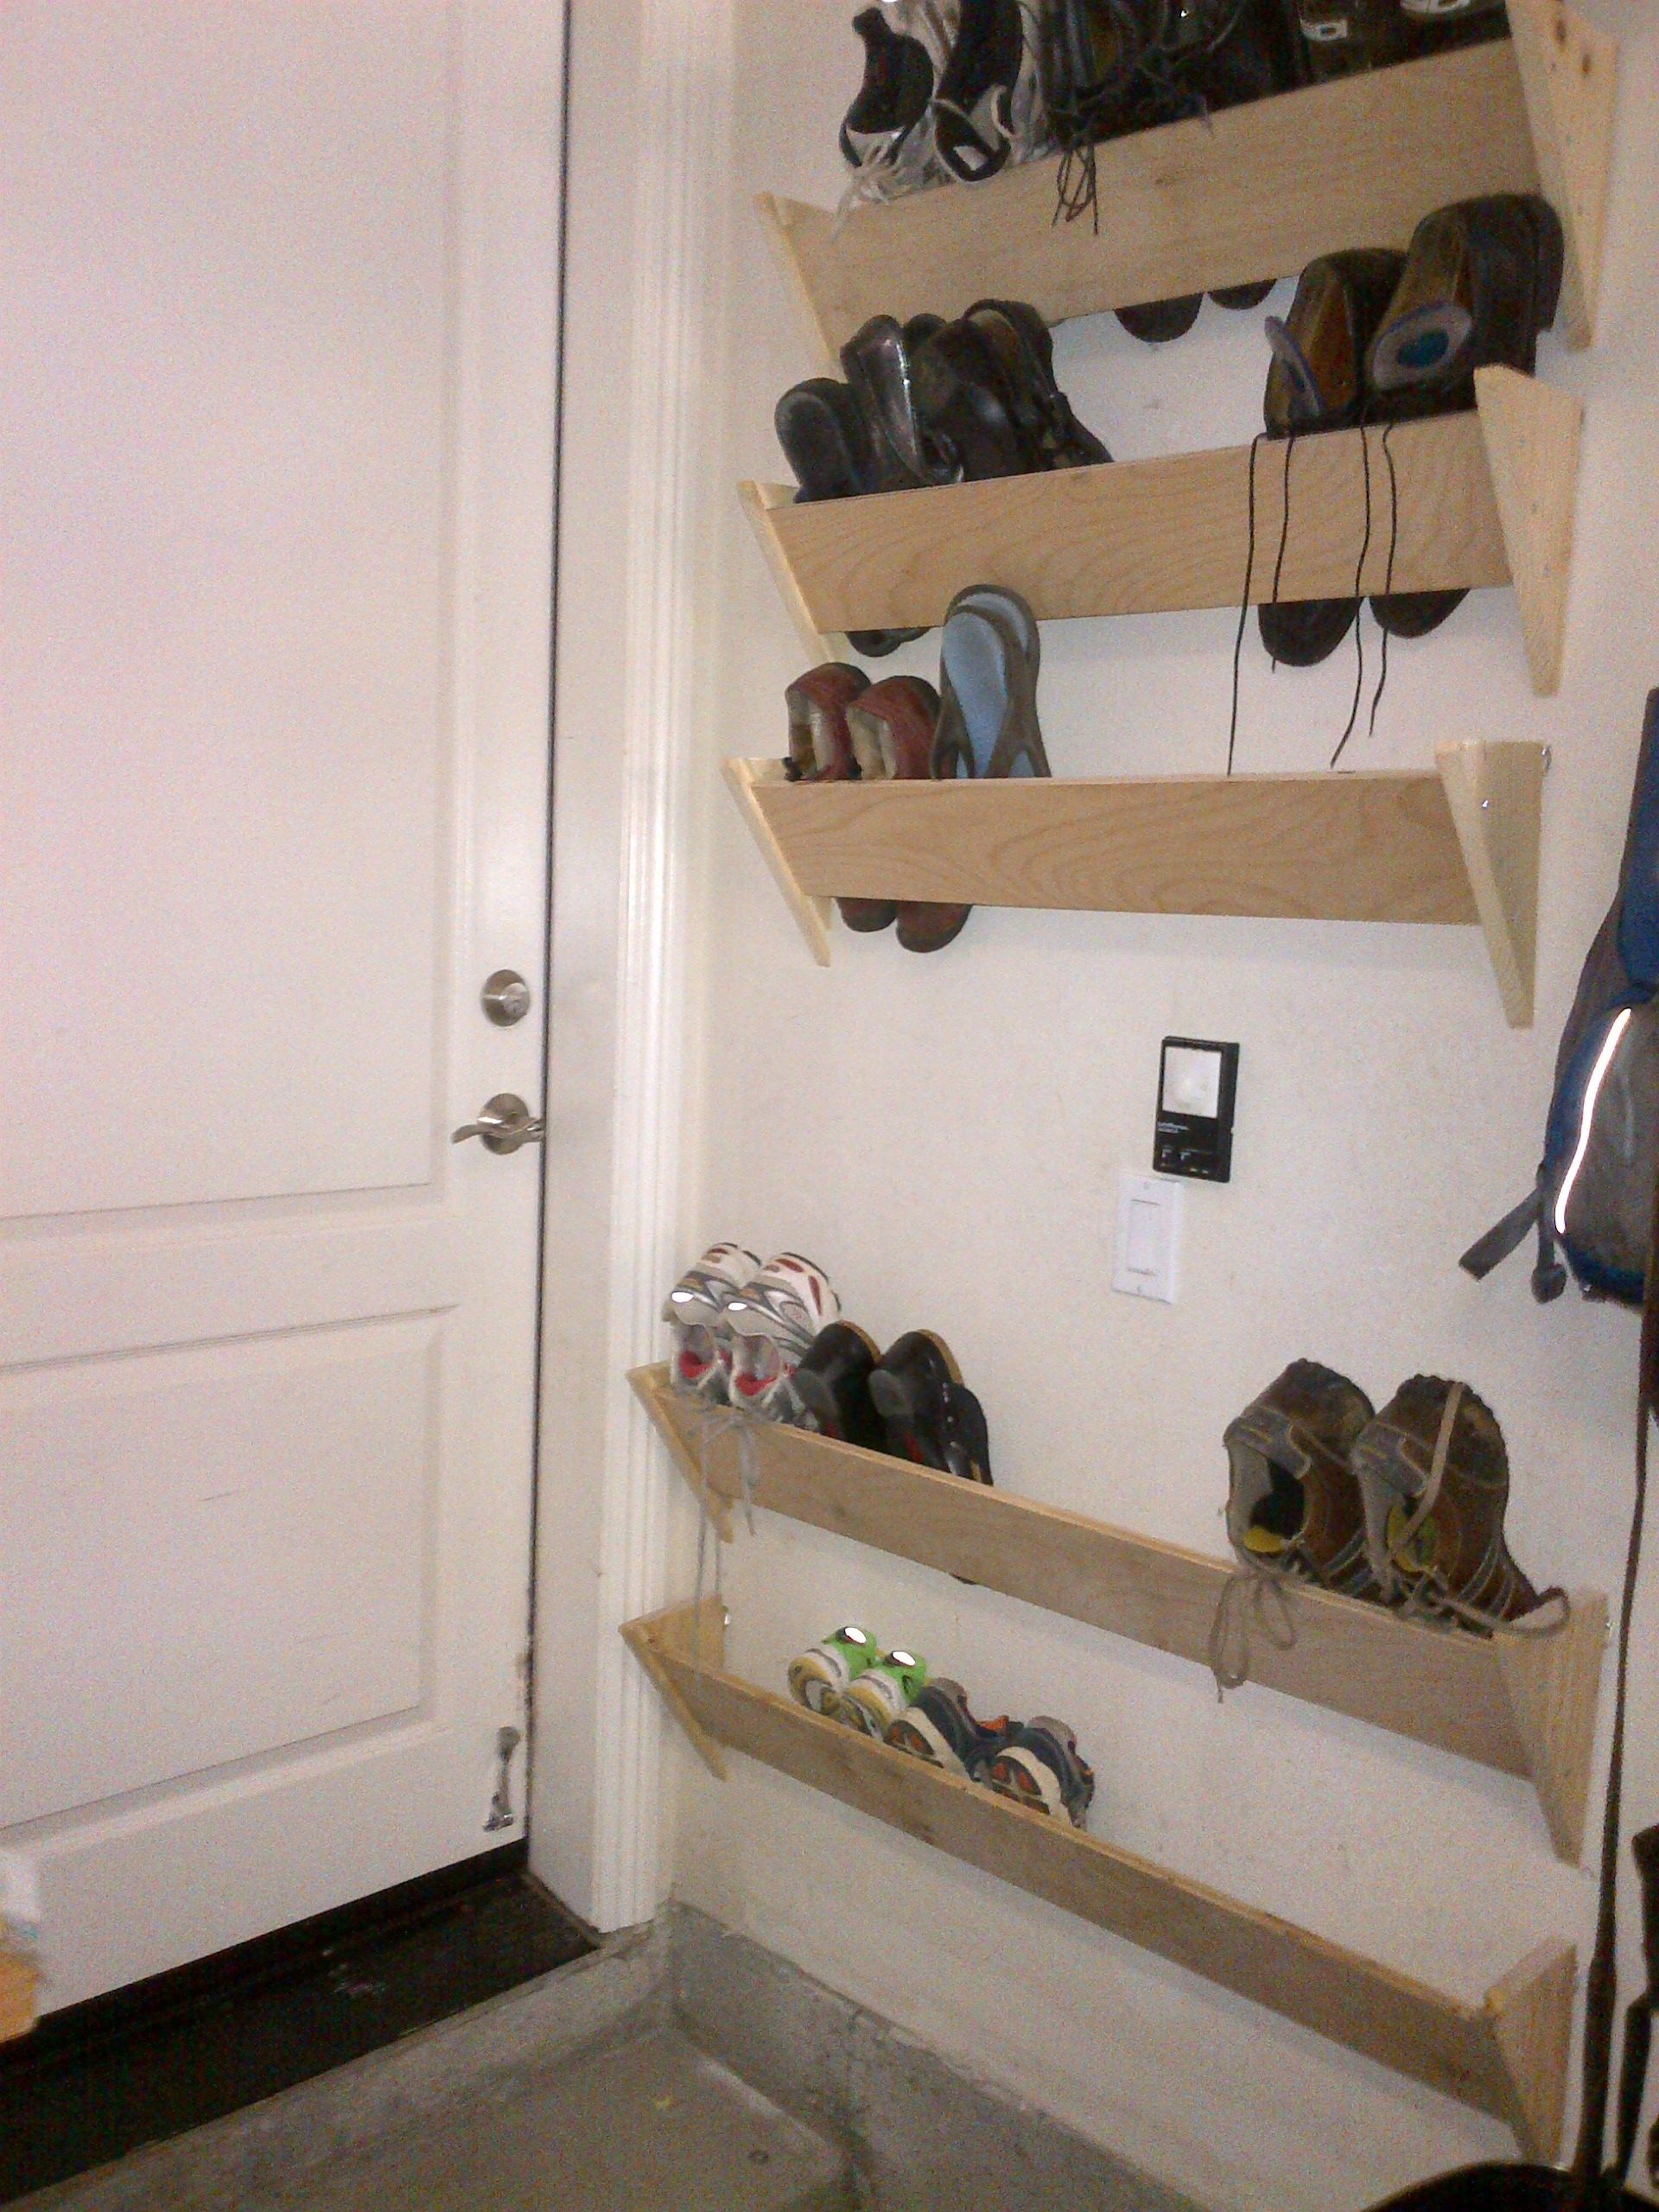 Homemade Shoe Racks For Our Garage Walls By The House Entrance Magically Cleans Up Hallway